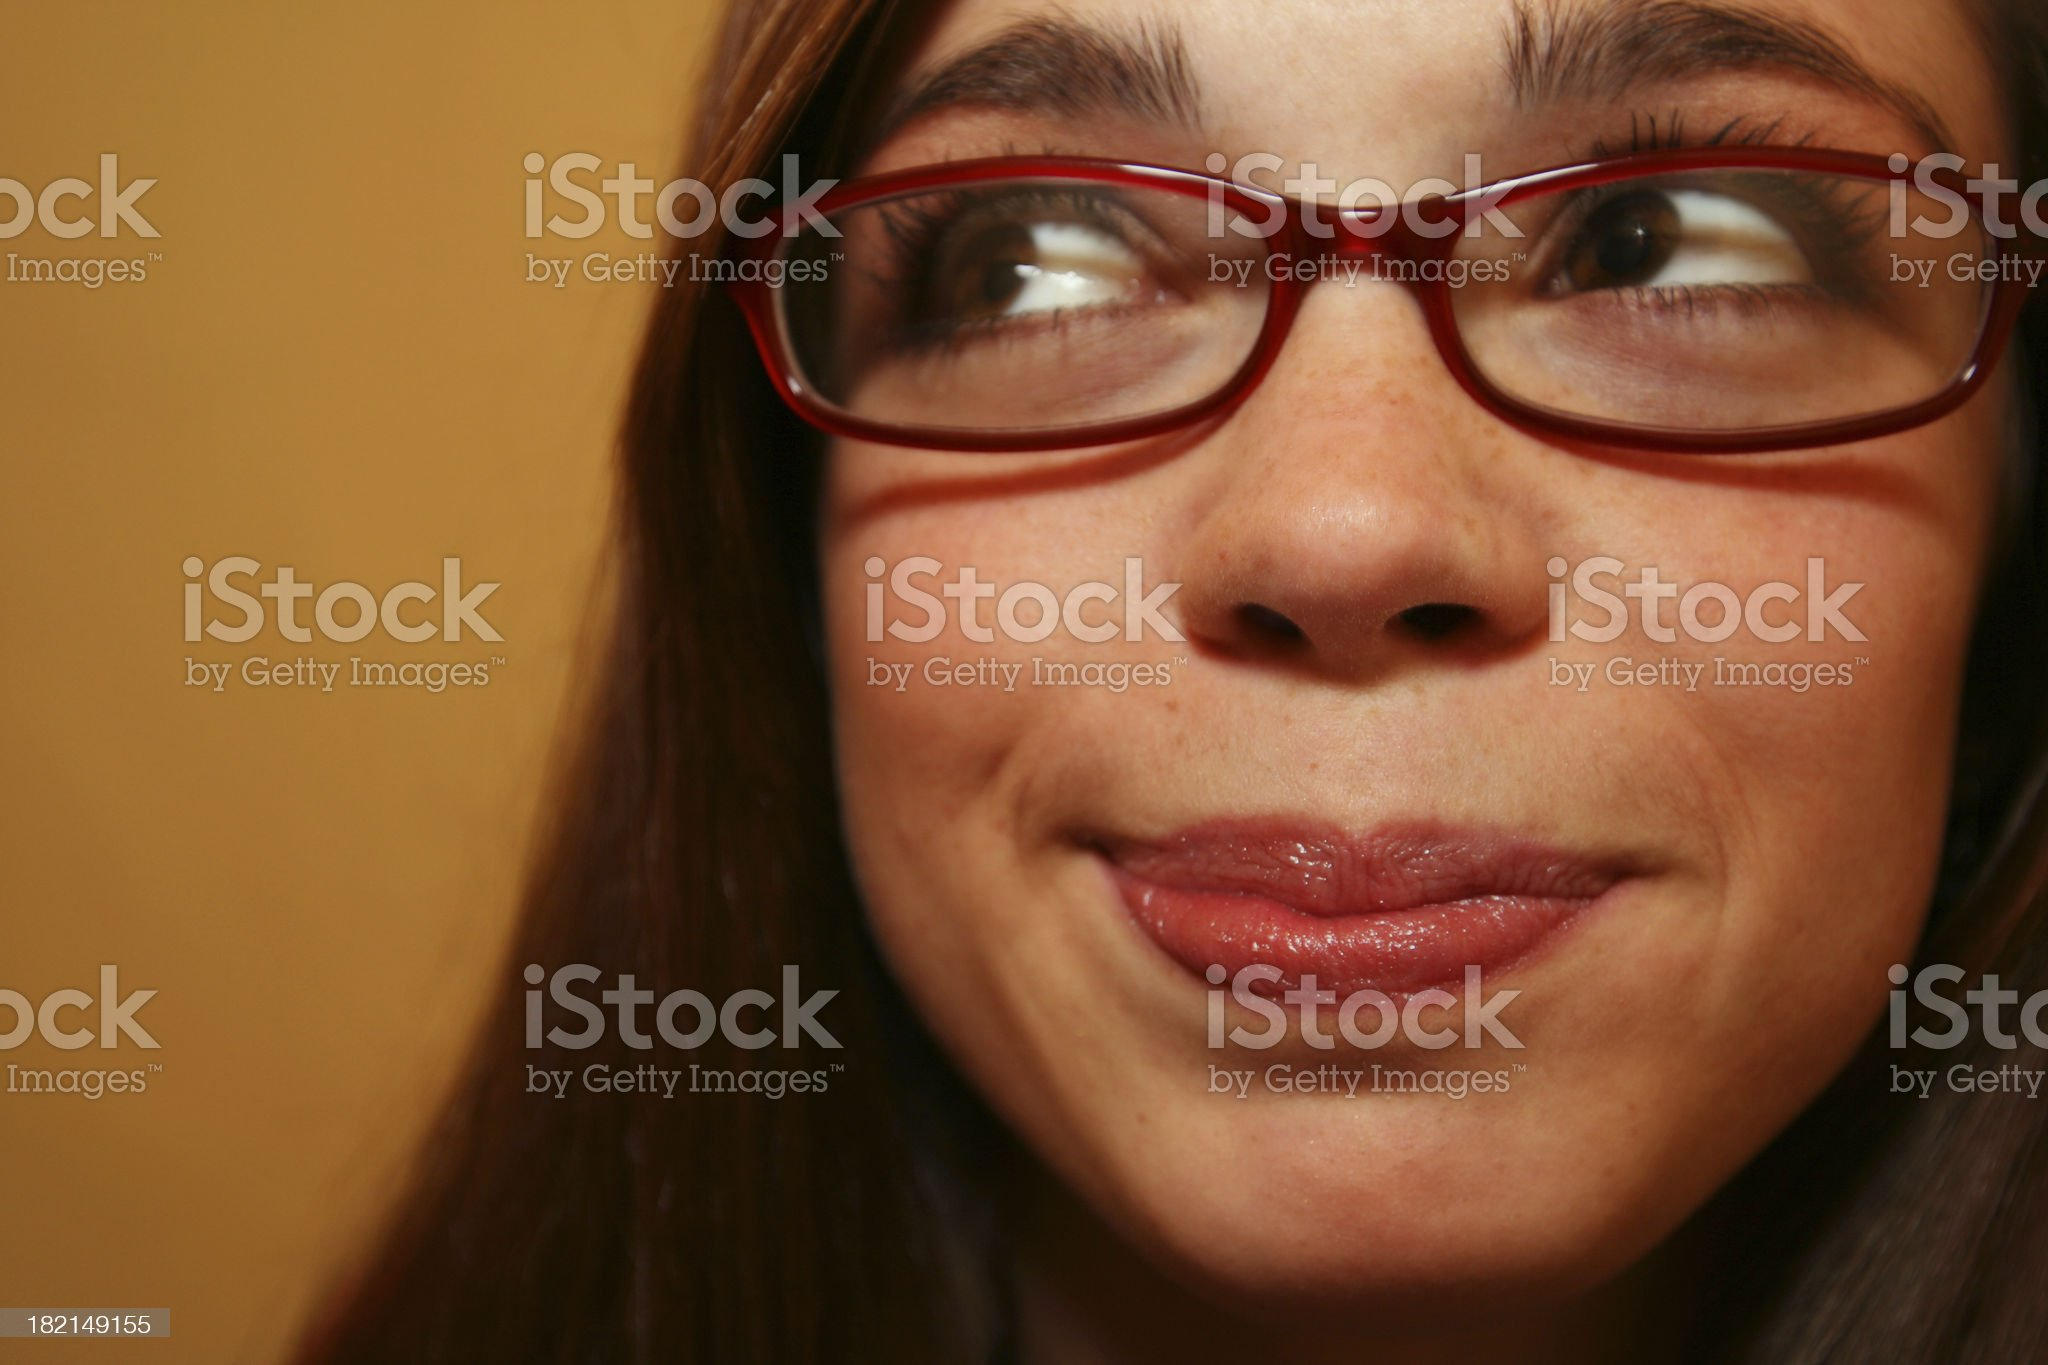 Expressions royalty-free stock photo